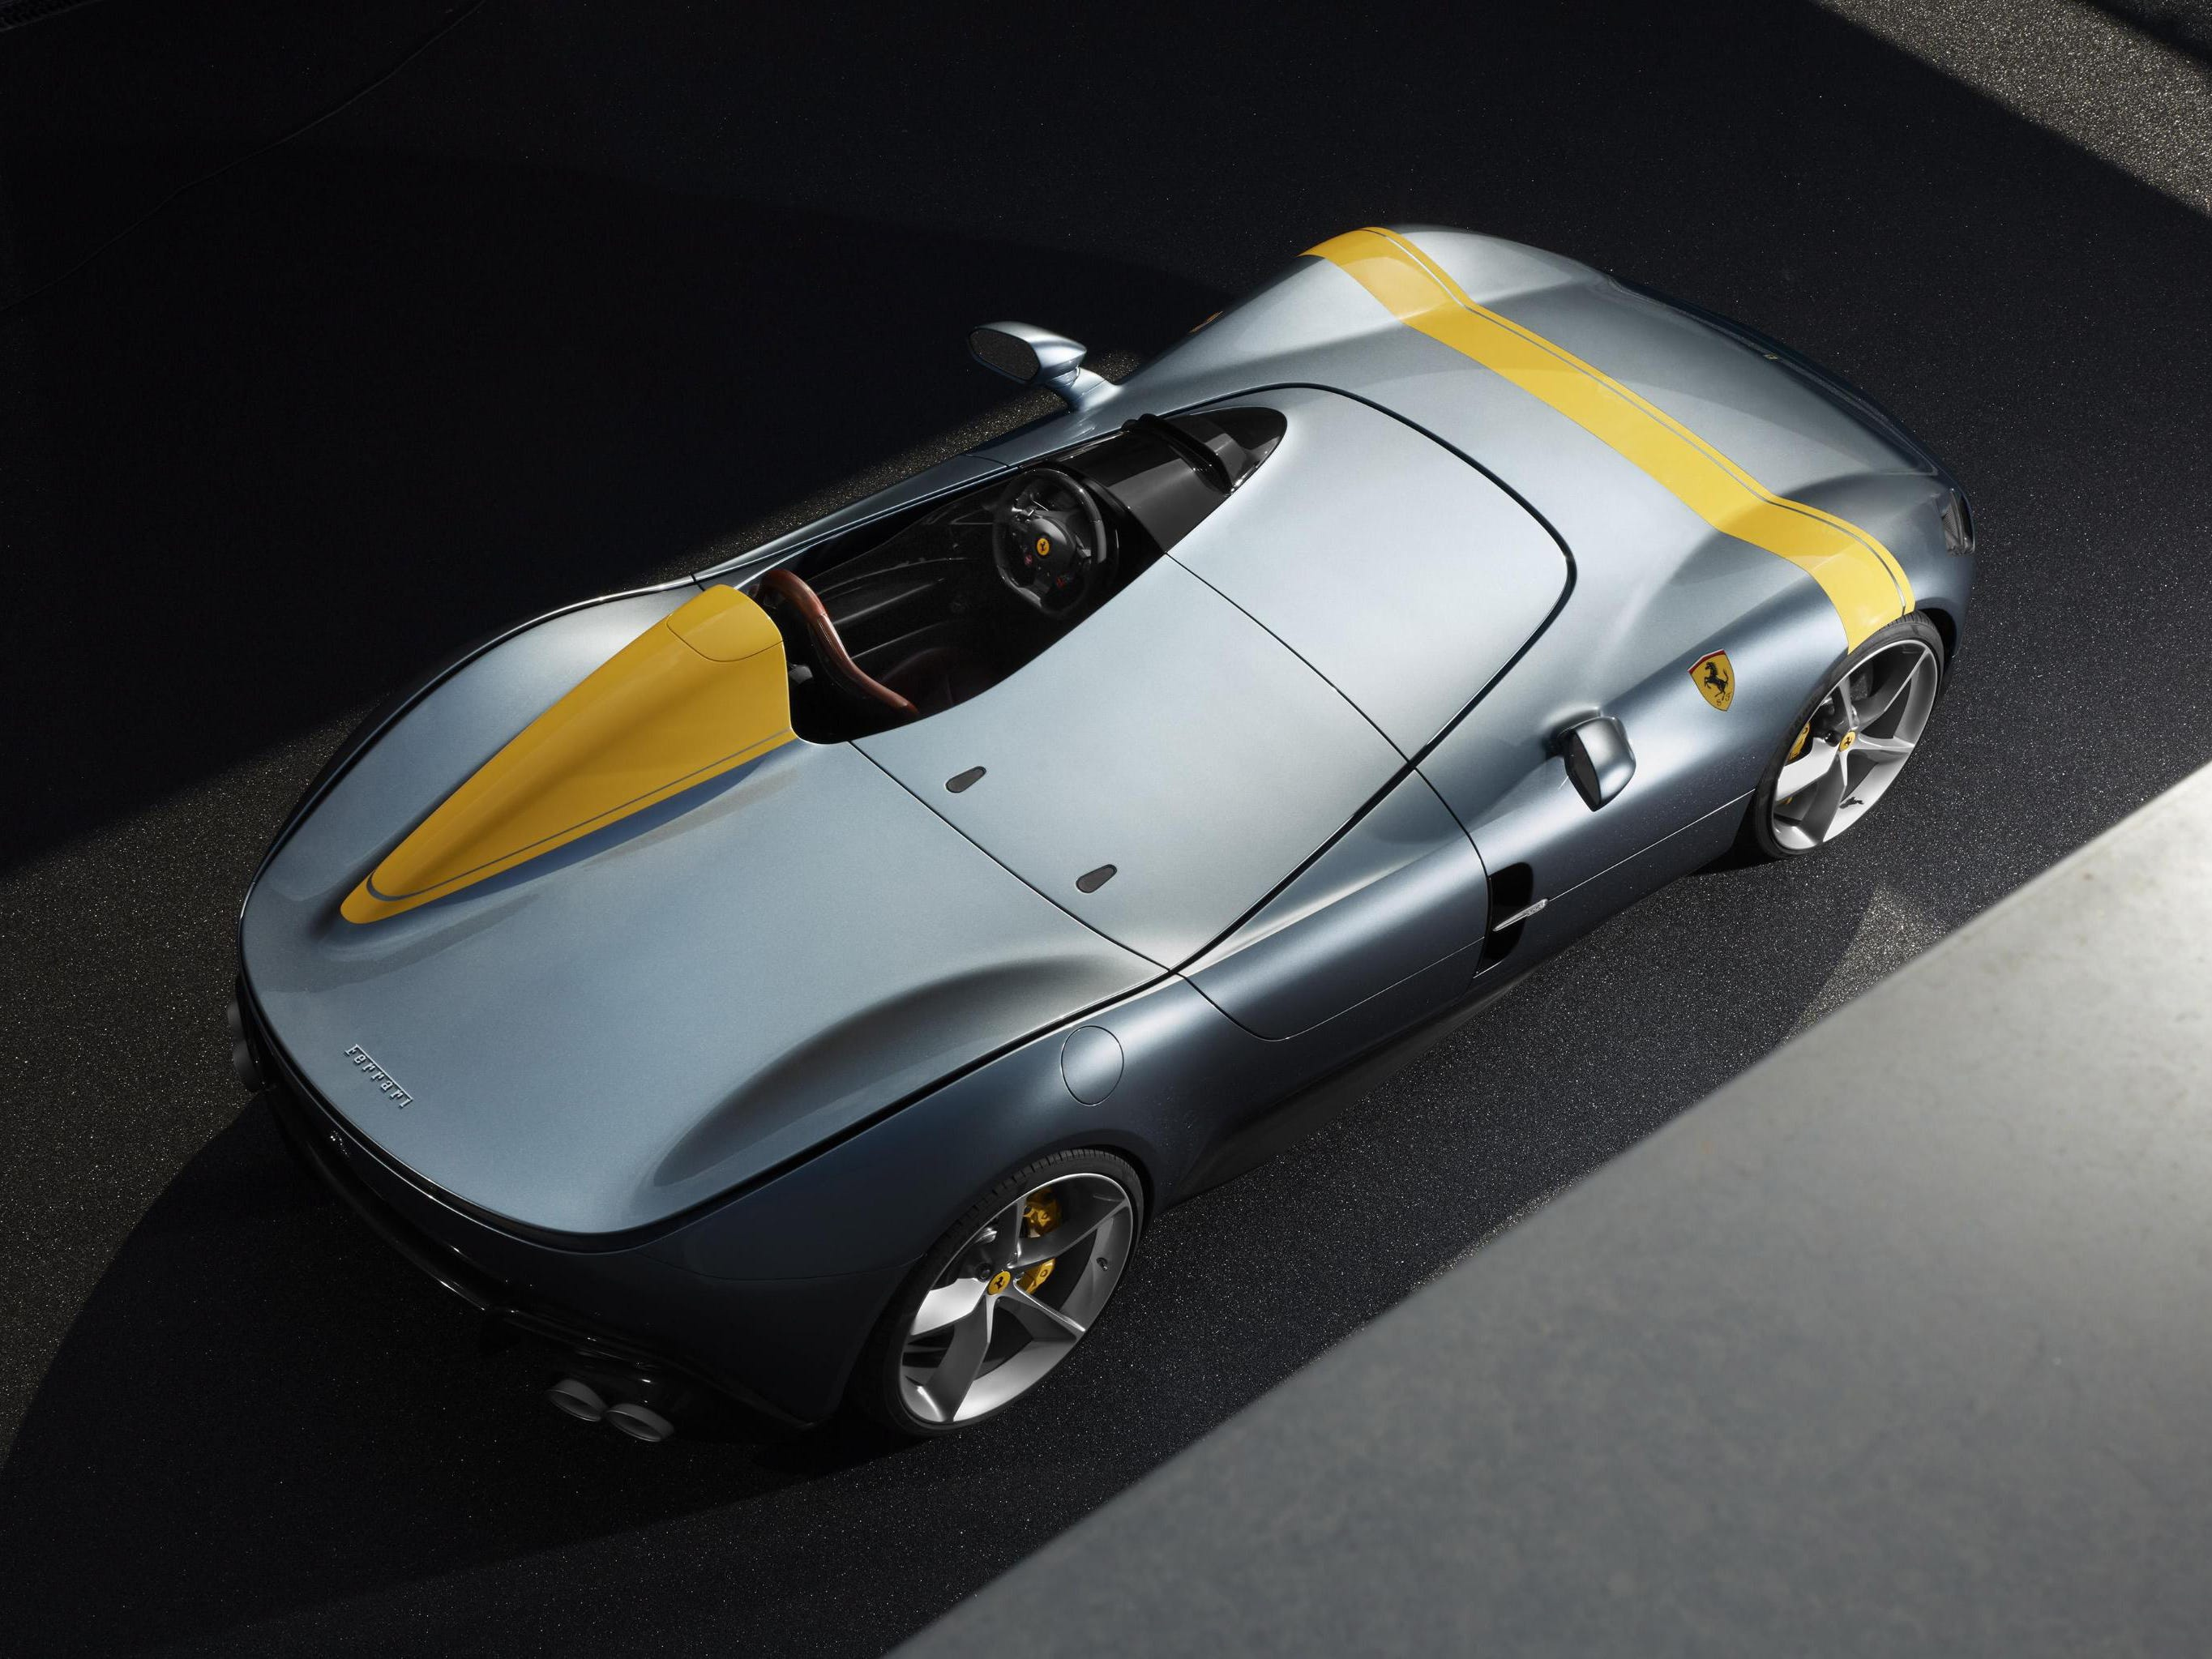 The Ferrari SP1 has only one seat.